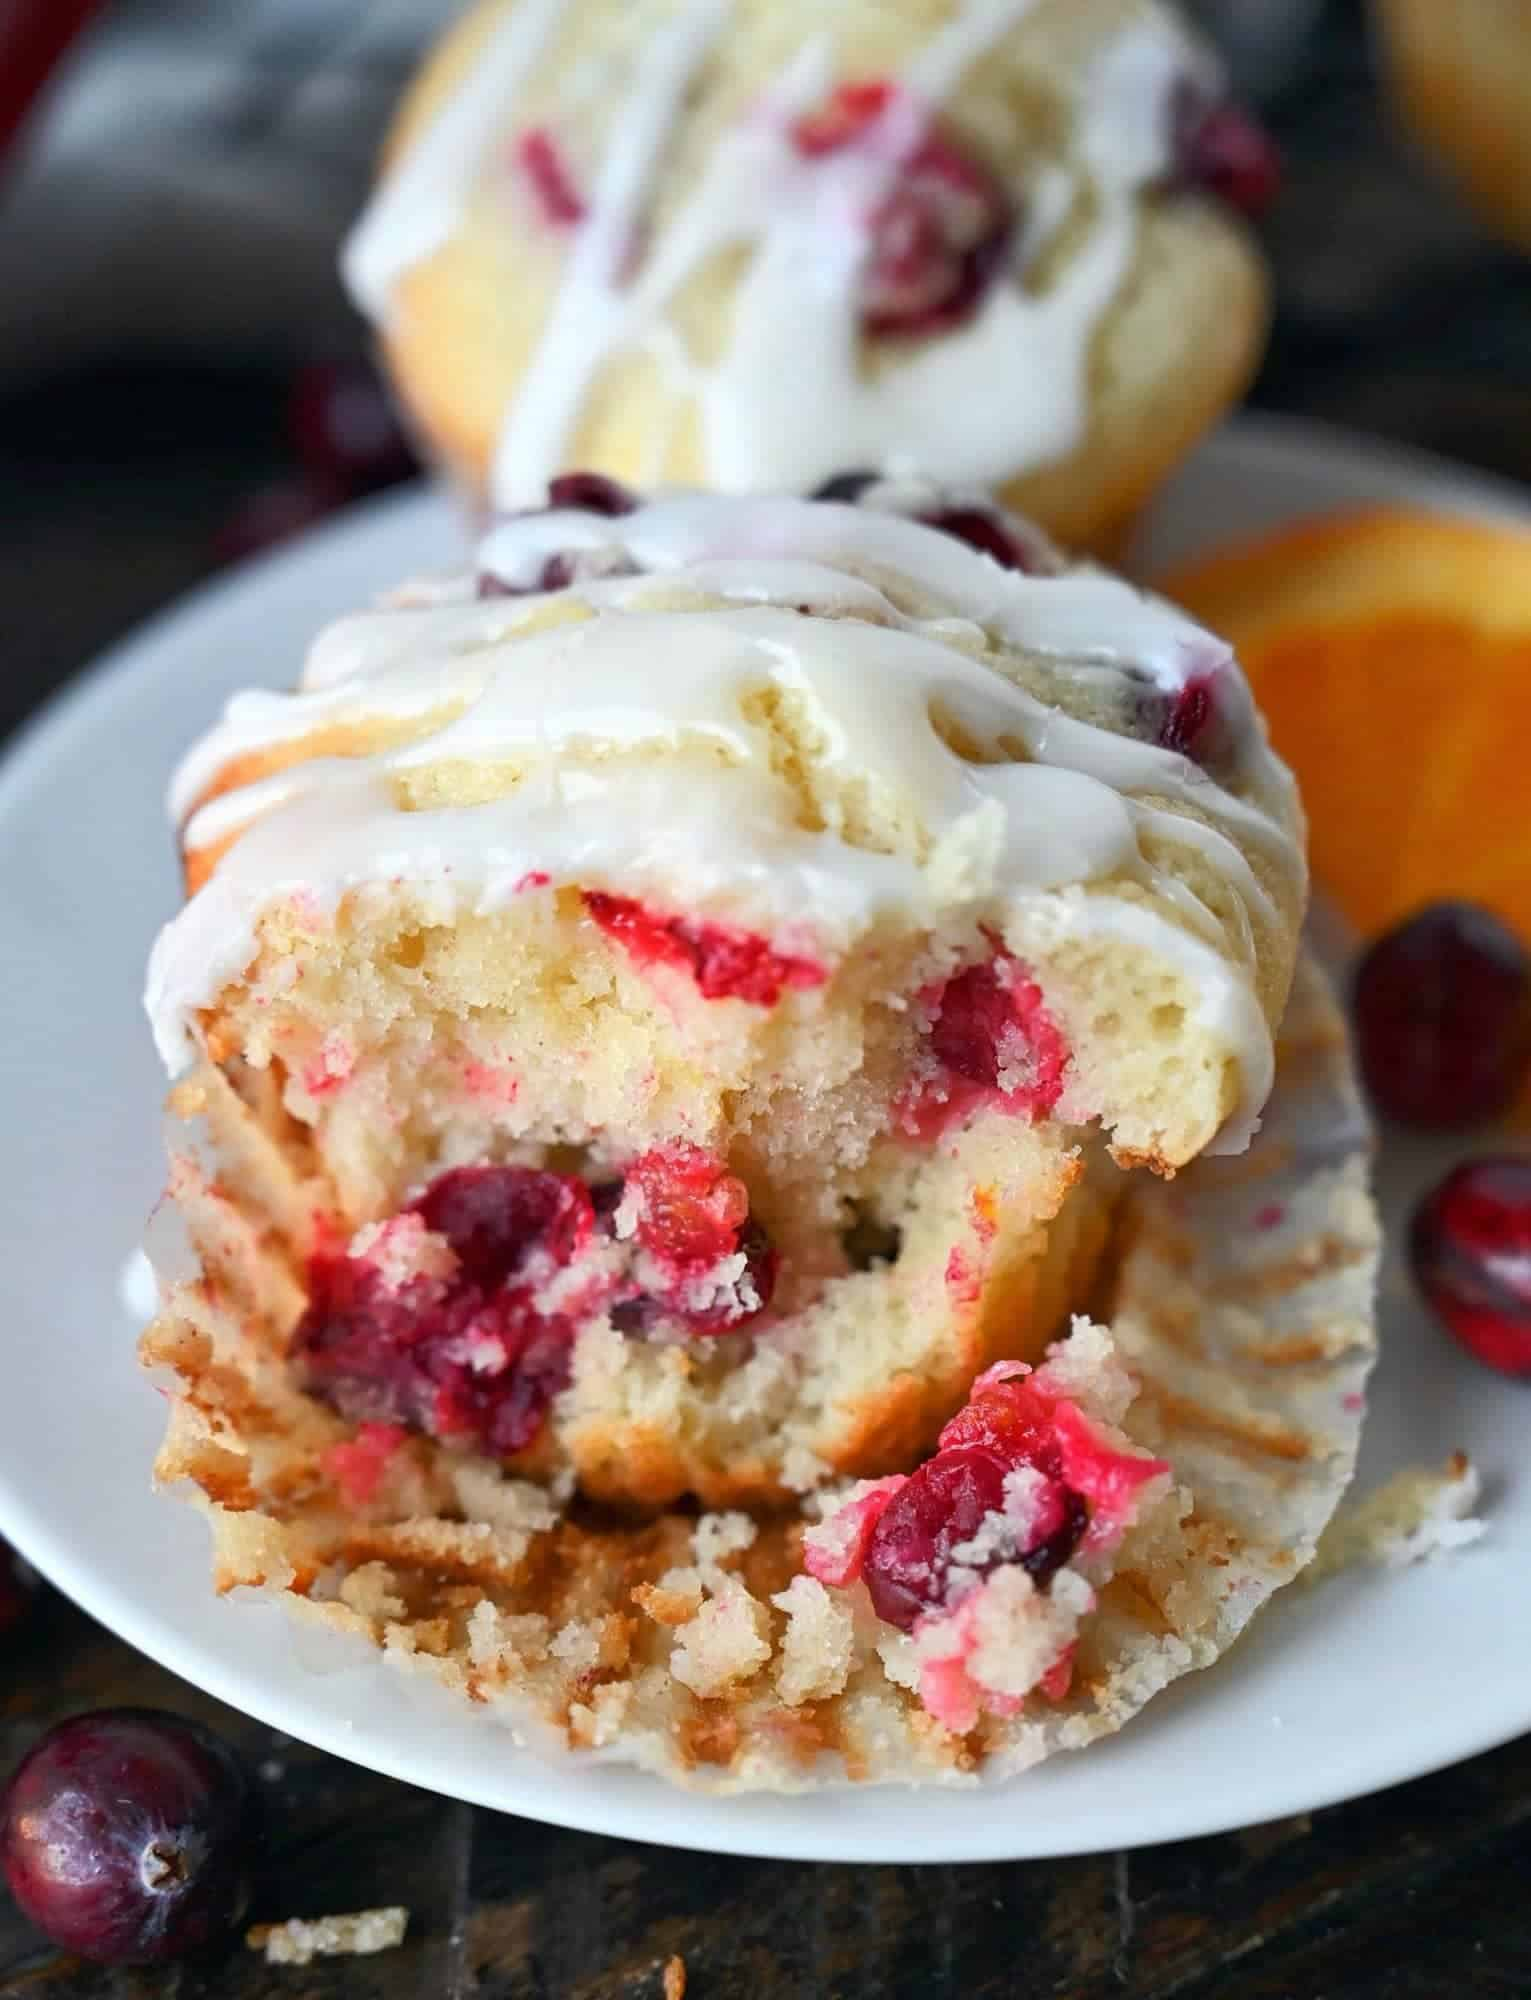 Cranberry orange muffin with a chunk removed from the front.